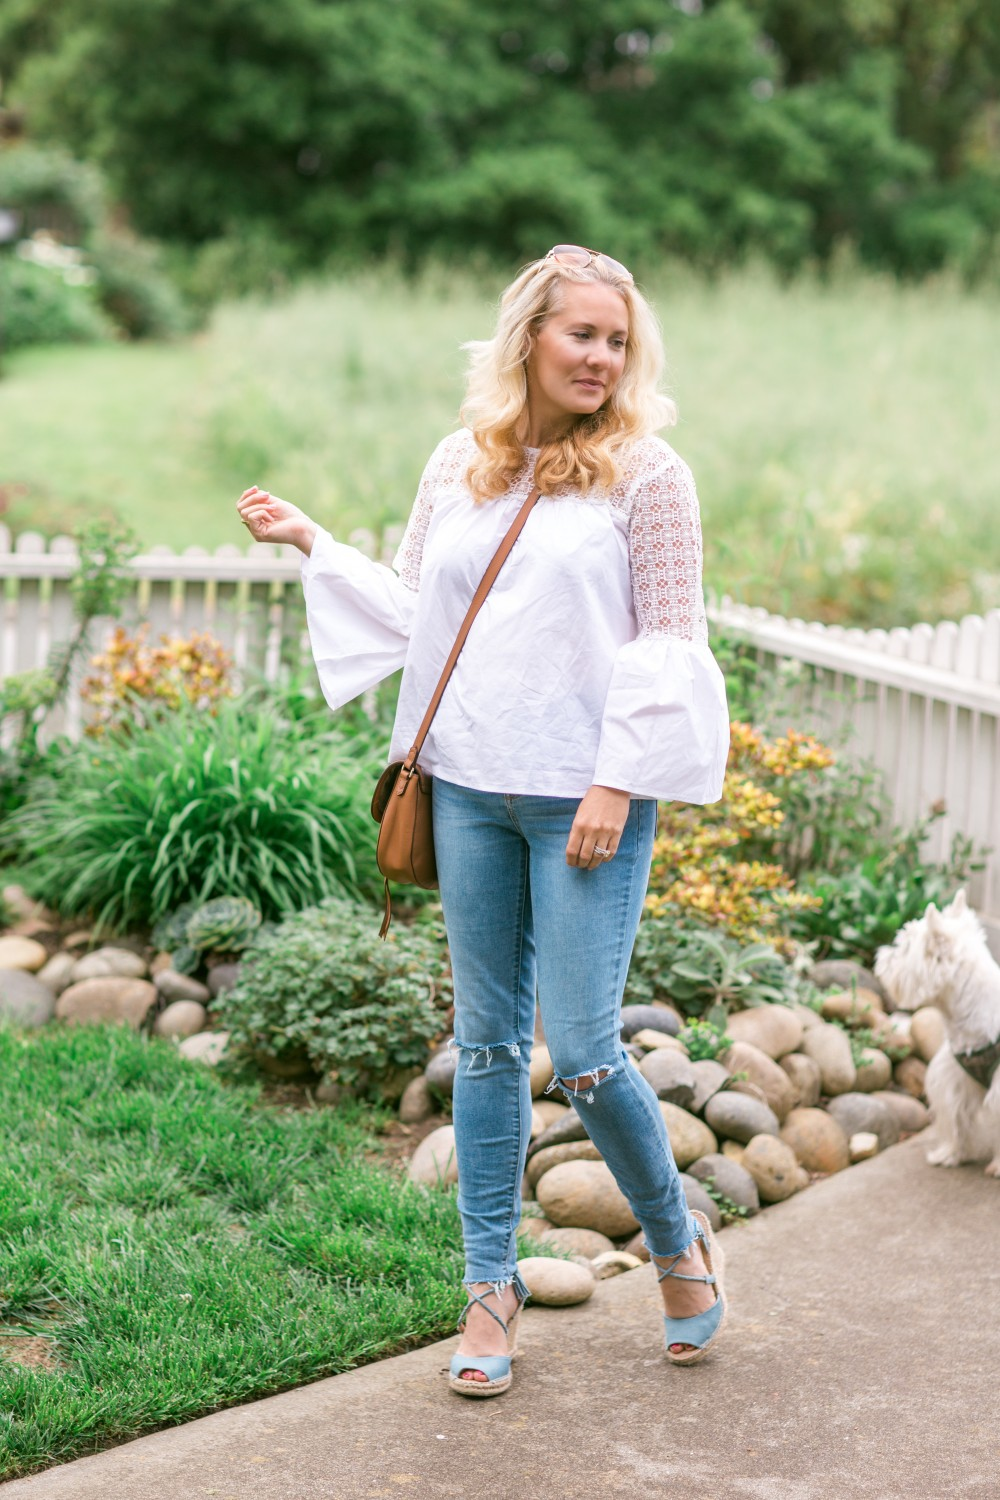 Eyelet Trim Blouse, Target Style, Spring Outfit Inspiration, Have Need Want, Mom Style